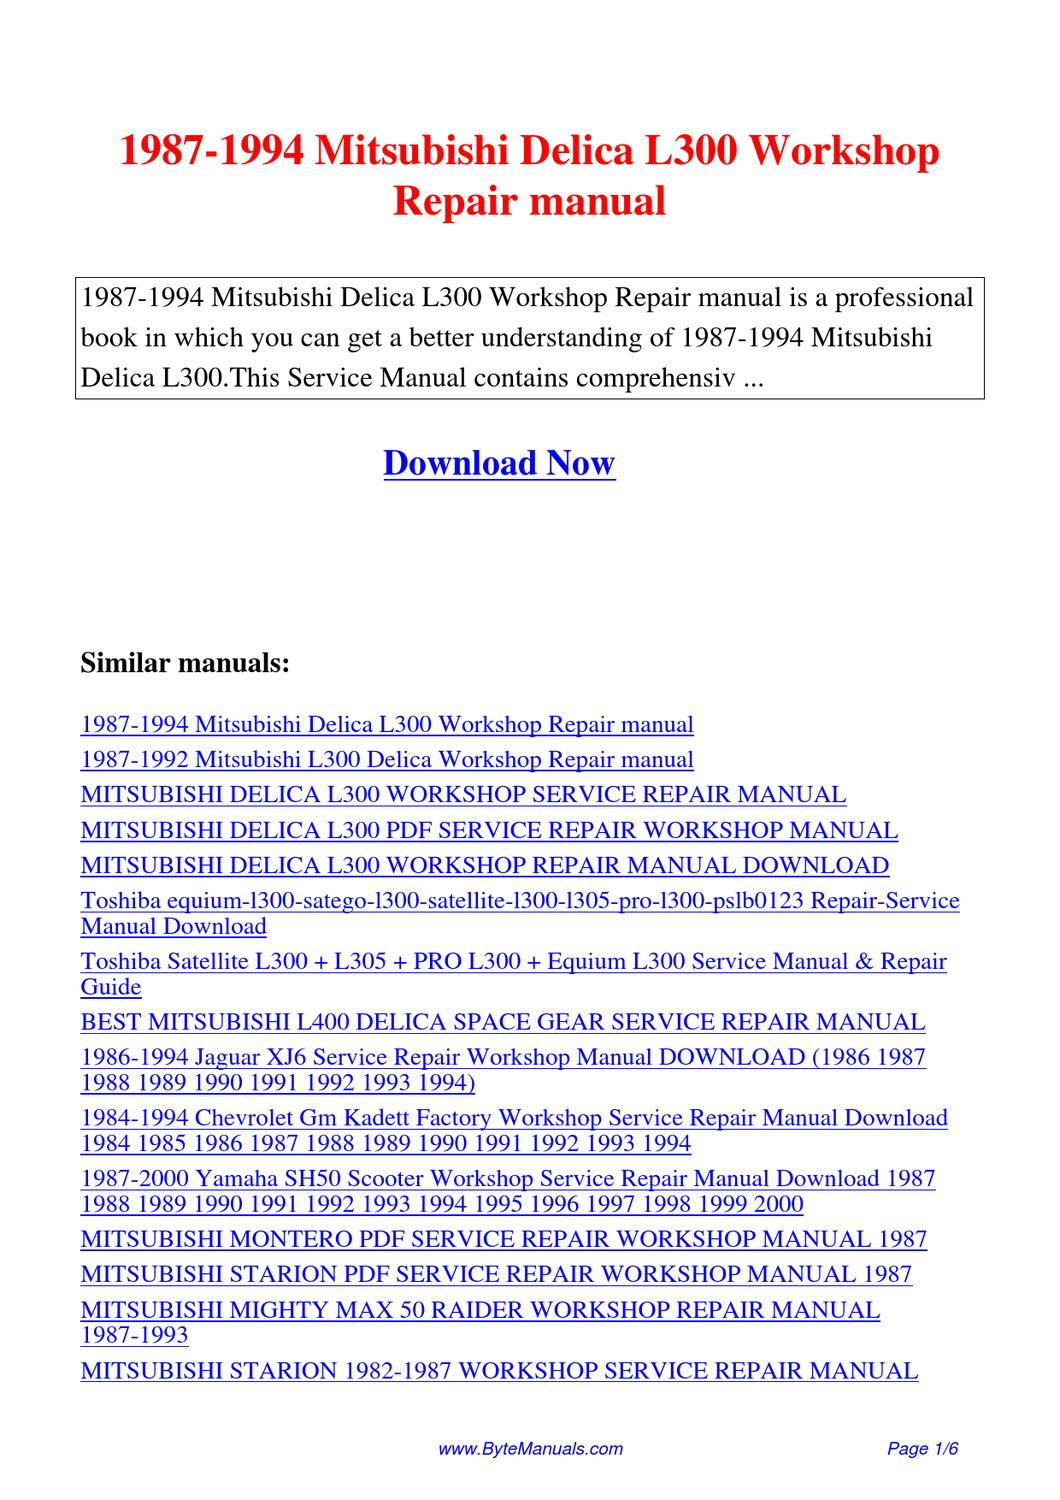 1987-1994_Mitsubishi_Delica_L300_Workshop_Repair_manual by Kai Lan - issuu